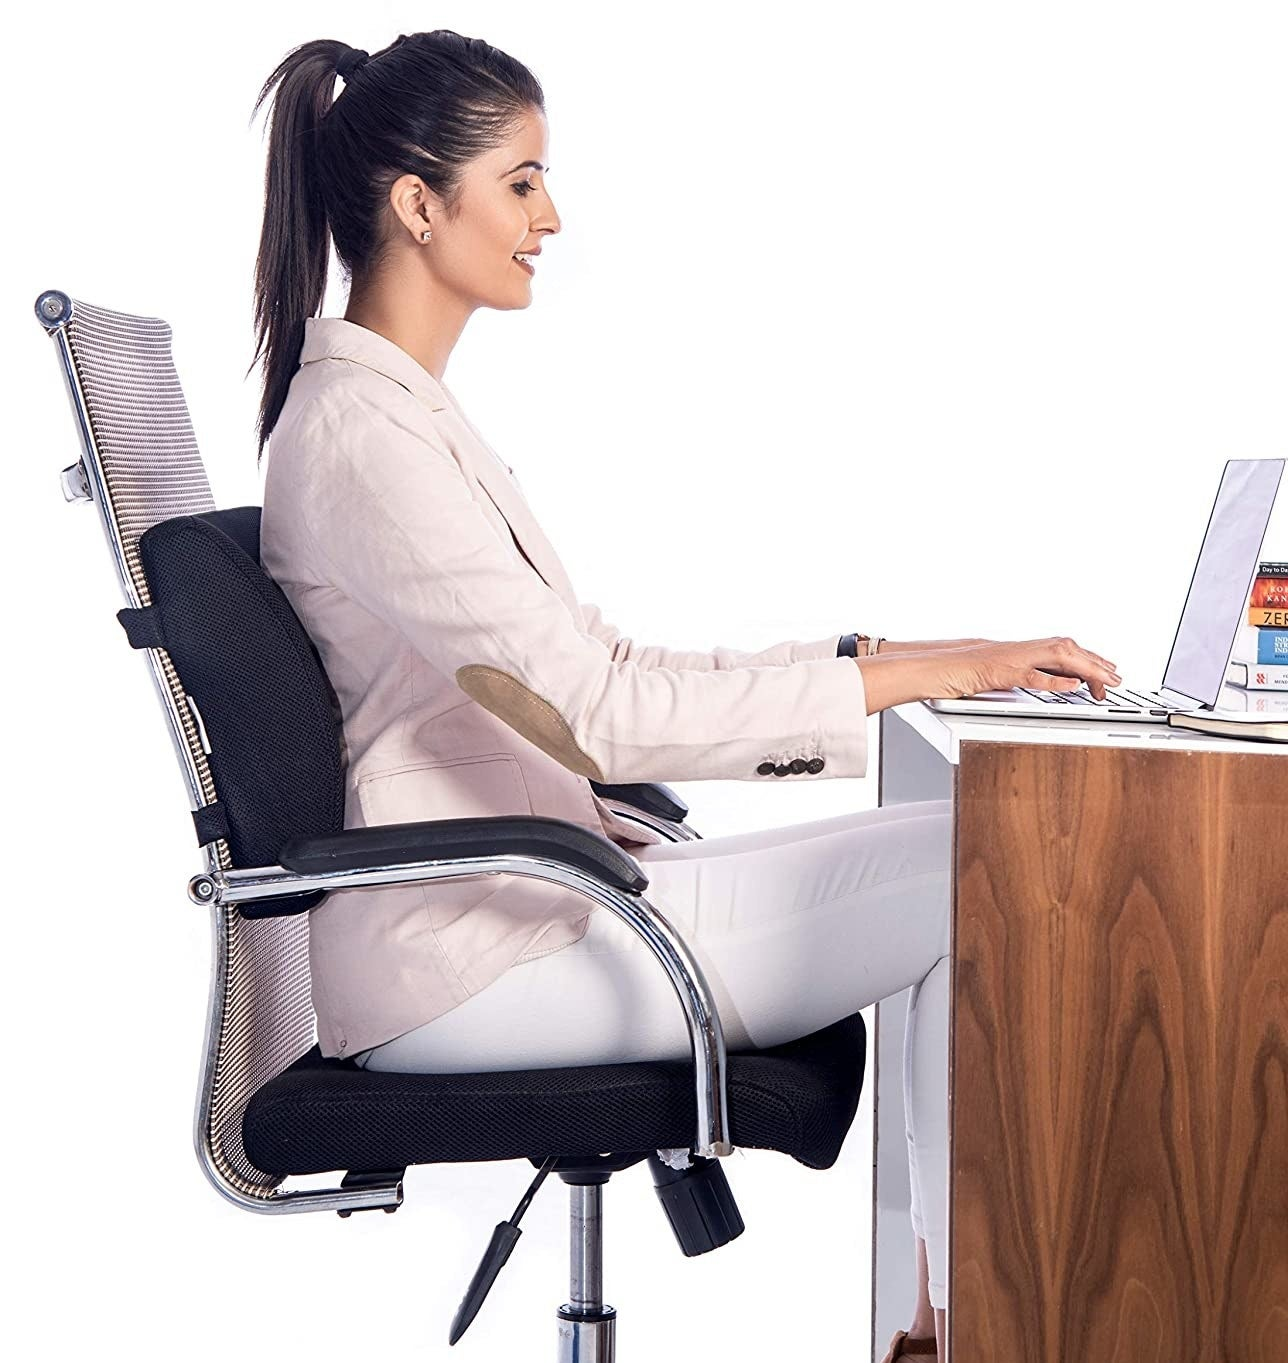 A woman using a laptop while sitting on a chair with the back cushion attached to it.